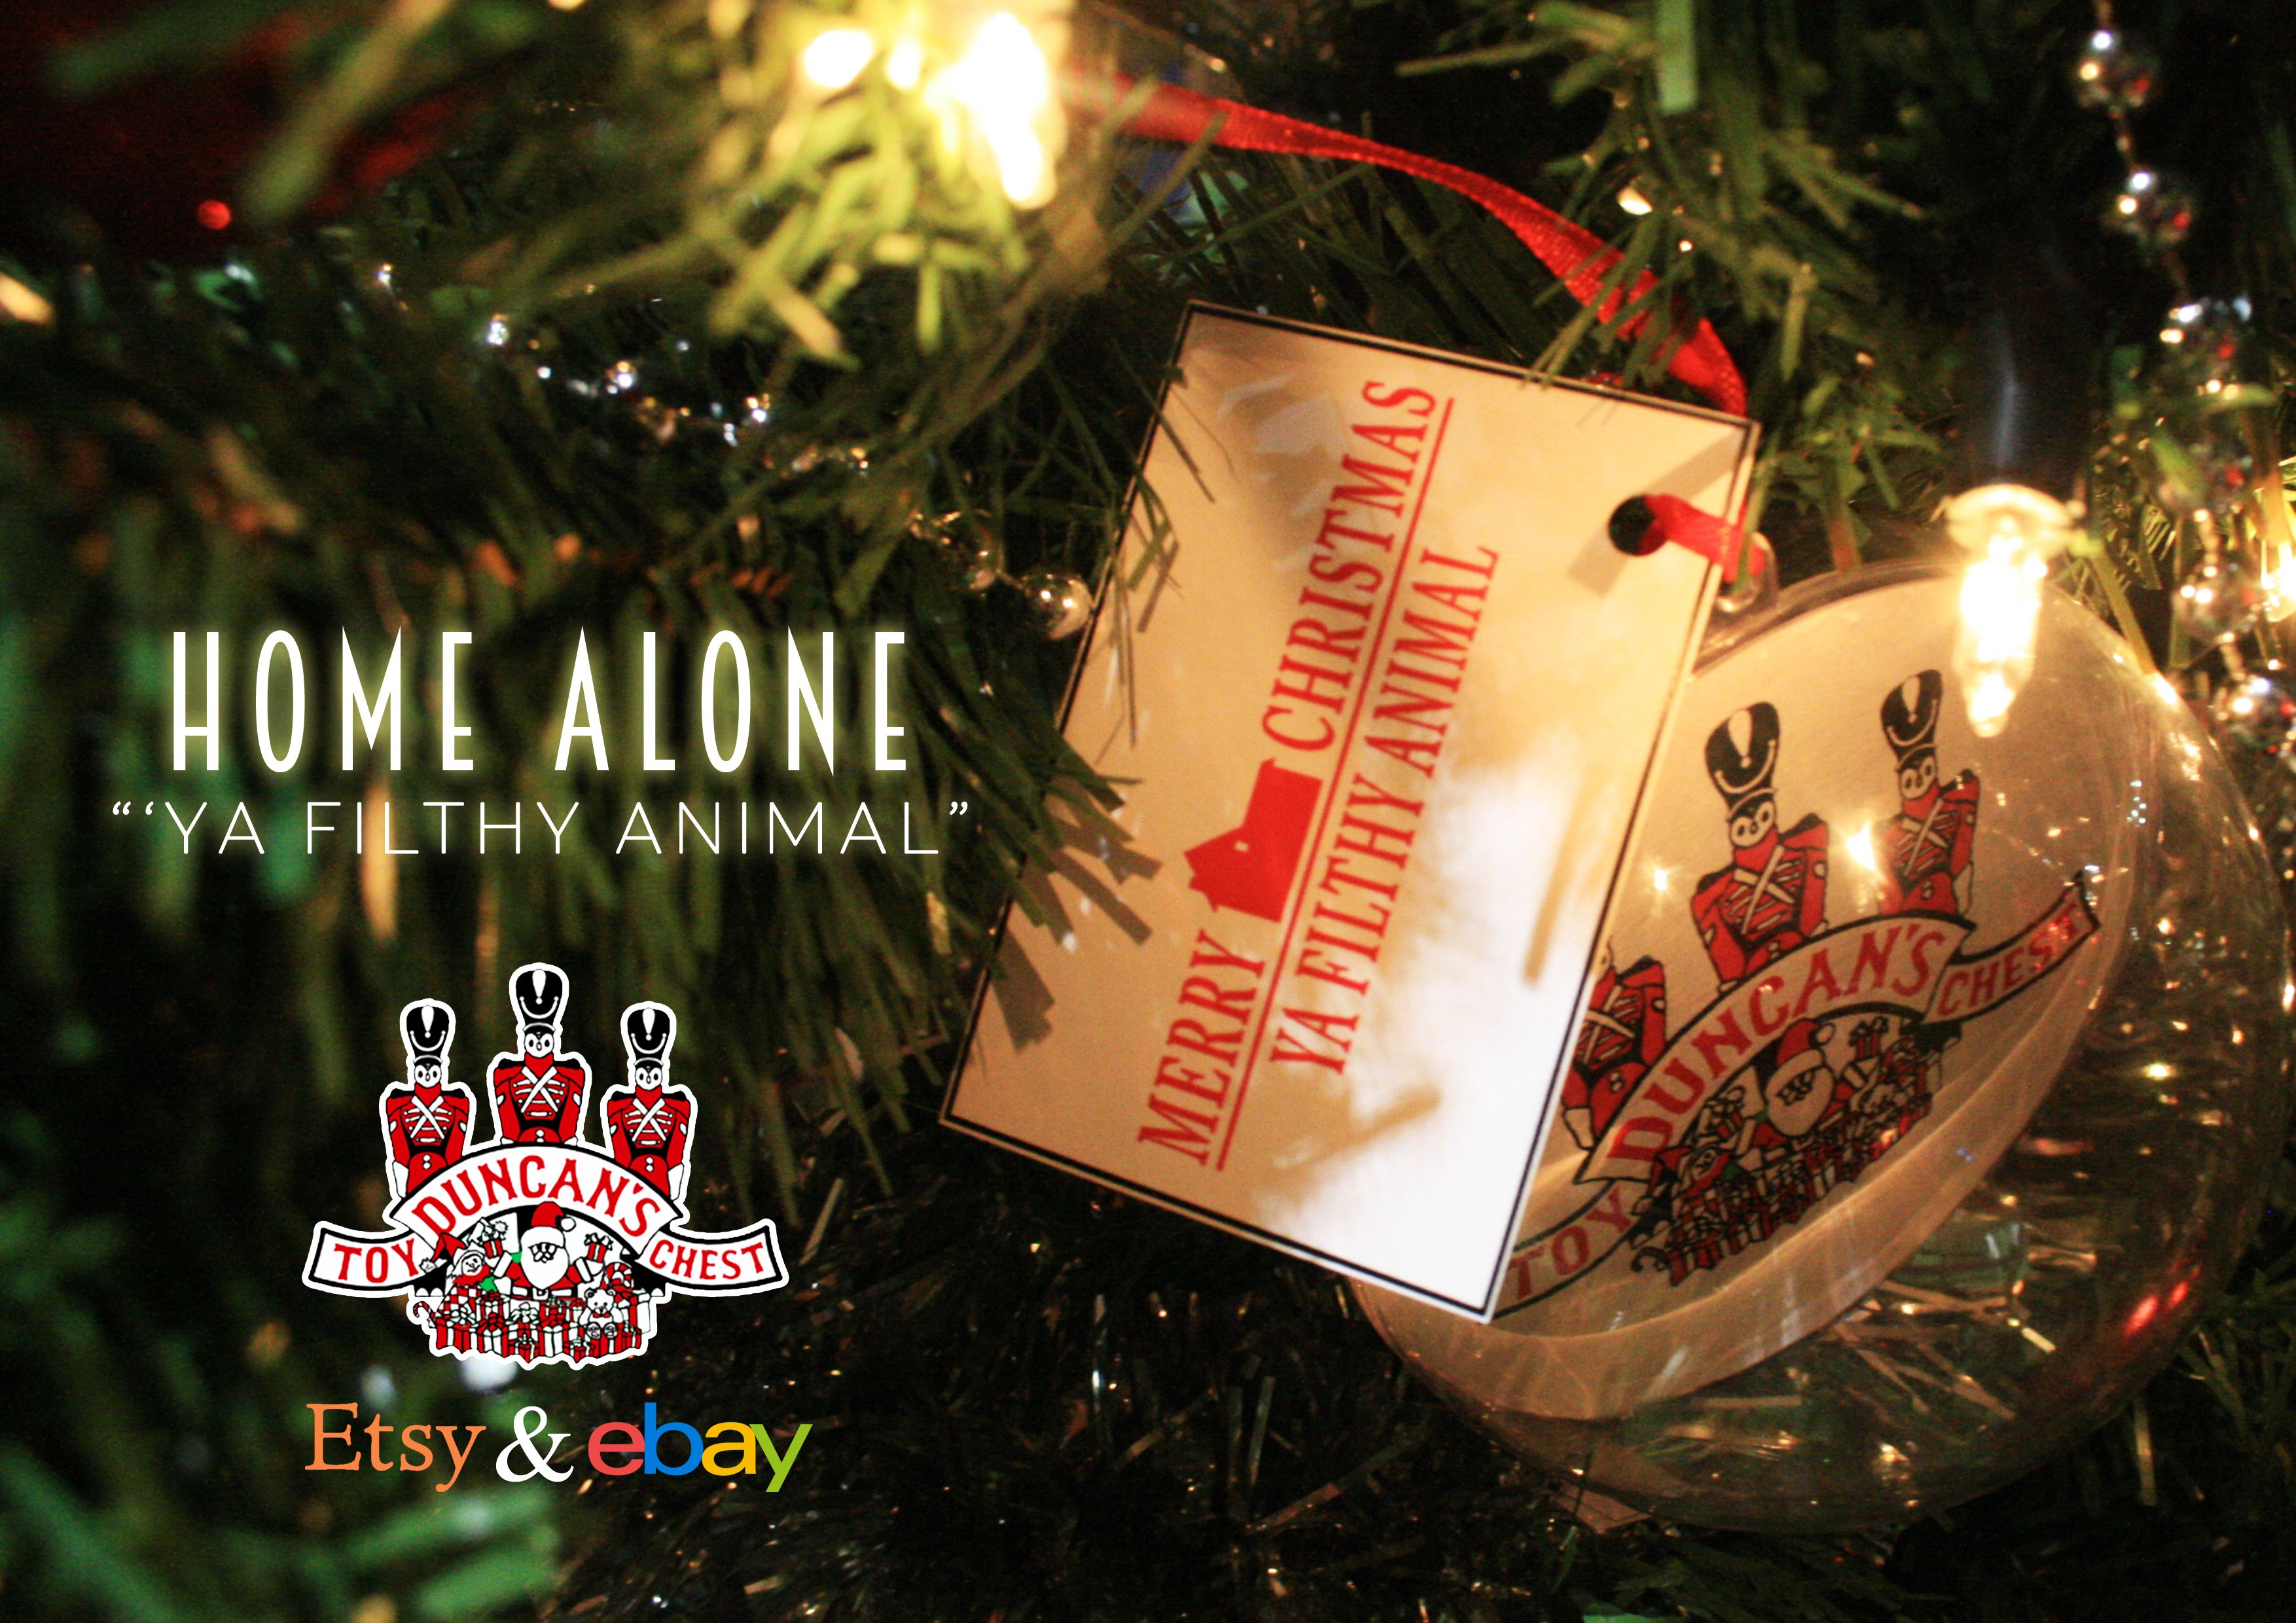 Home Alone 2 Lost In New York Bauble Available At Https Www Etsy Com Uk Shop Duncanstoychest Christmas Tree Baubles Christmas Bulbs Home Alone Christmas